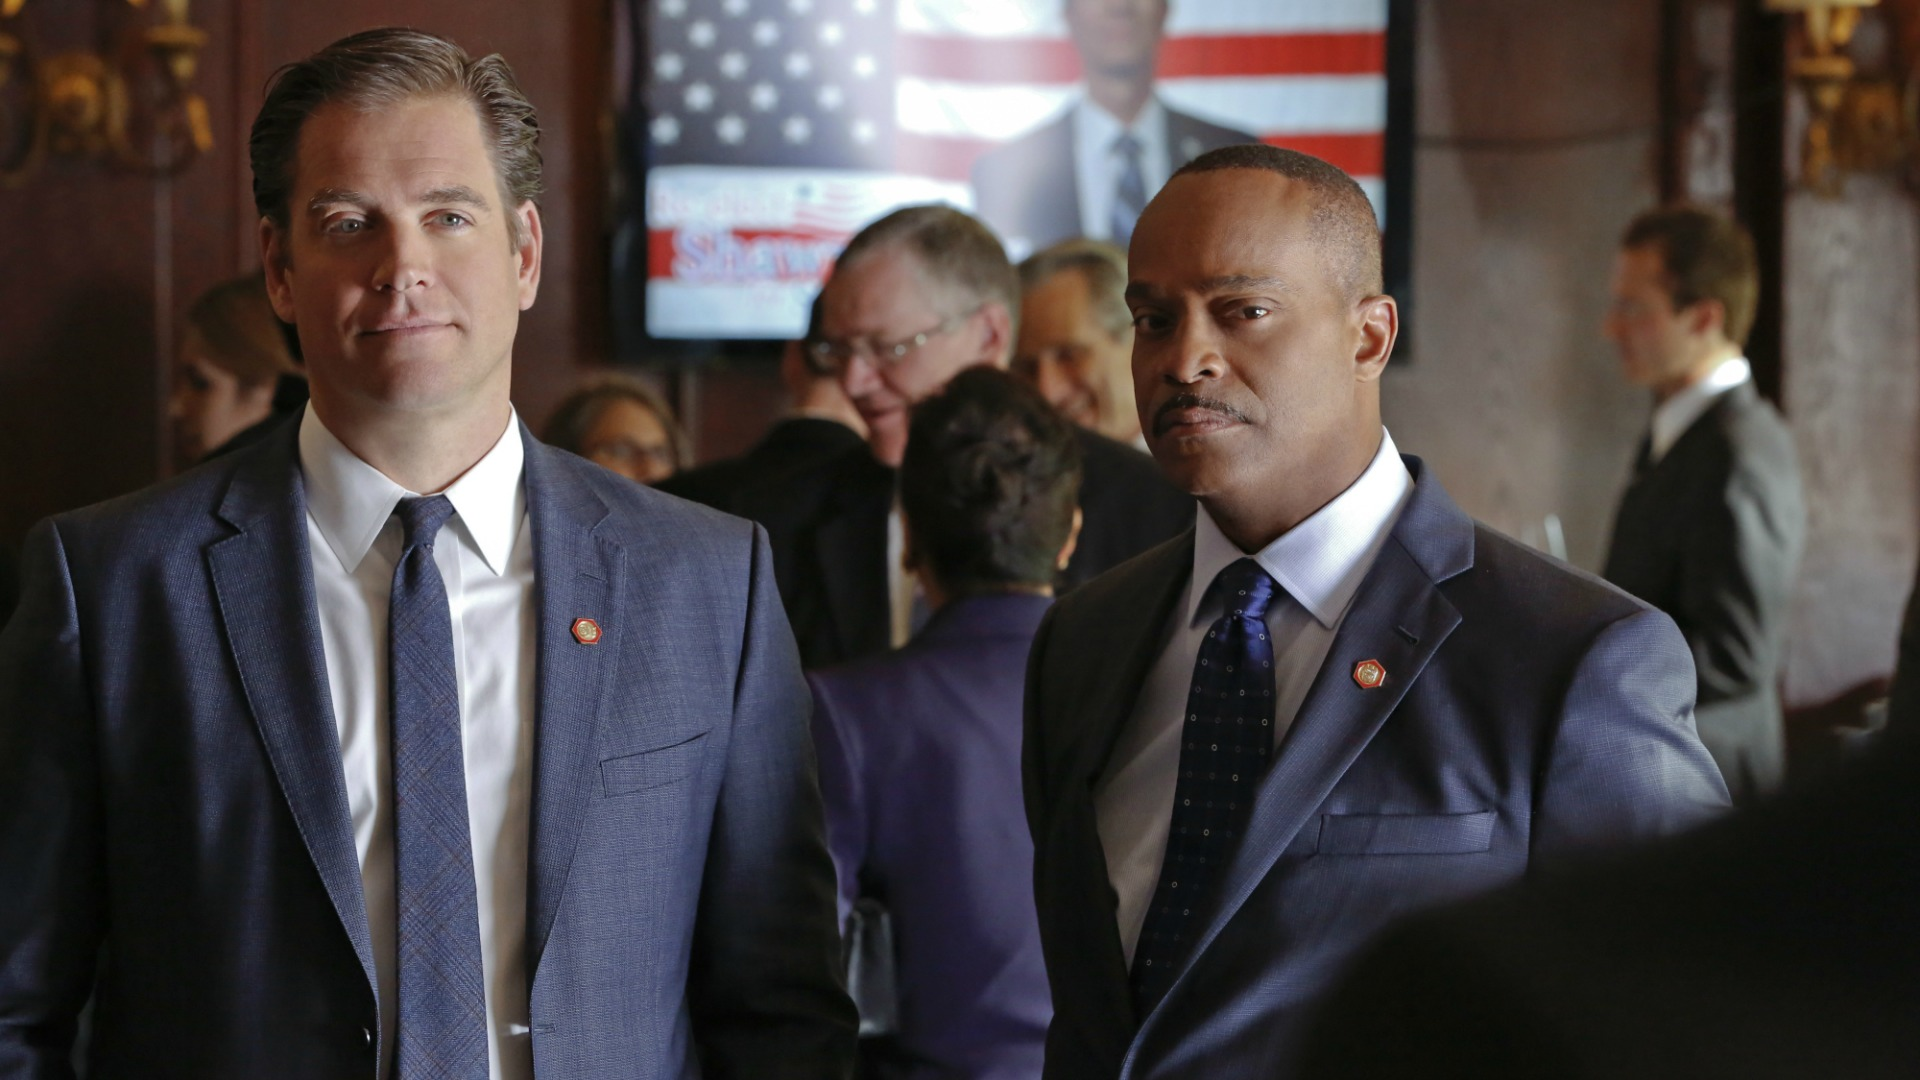 DiNozzo and Vance have a strange conversation.